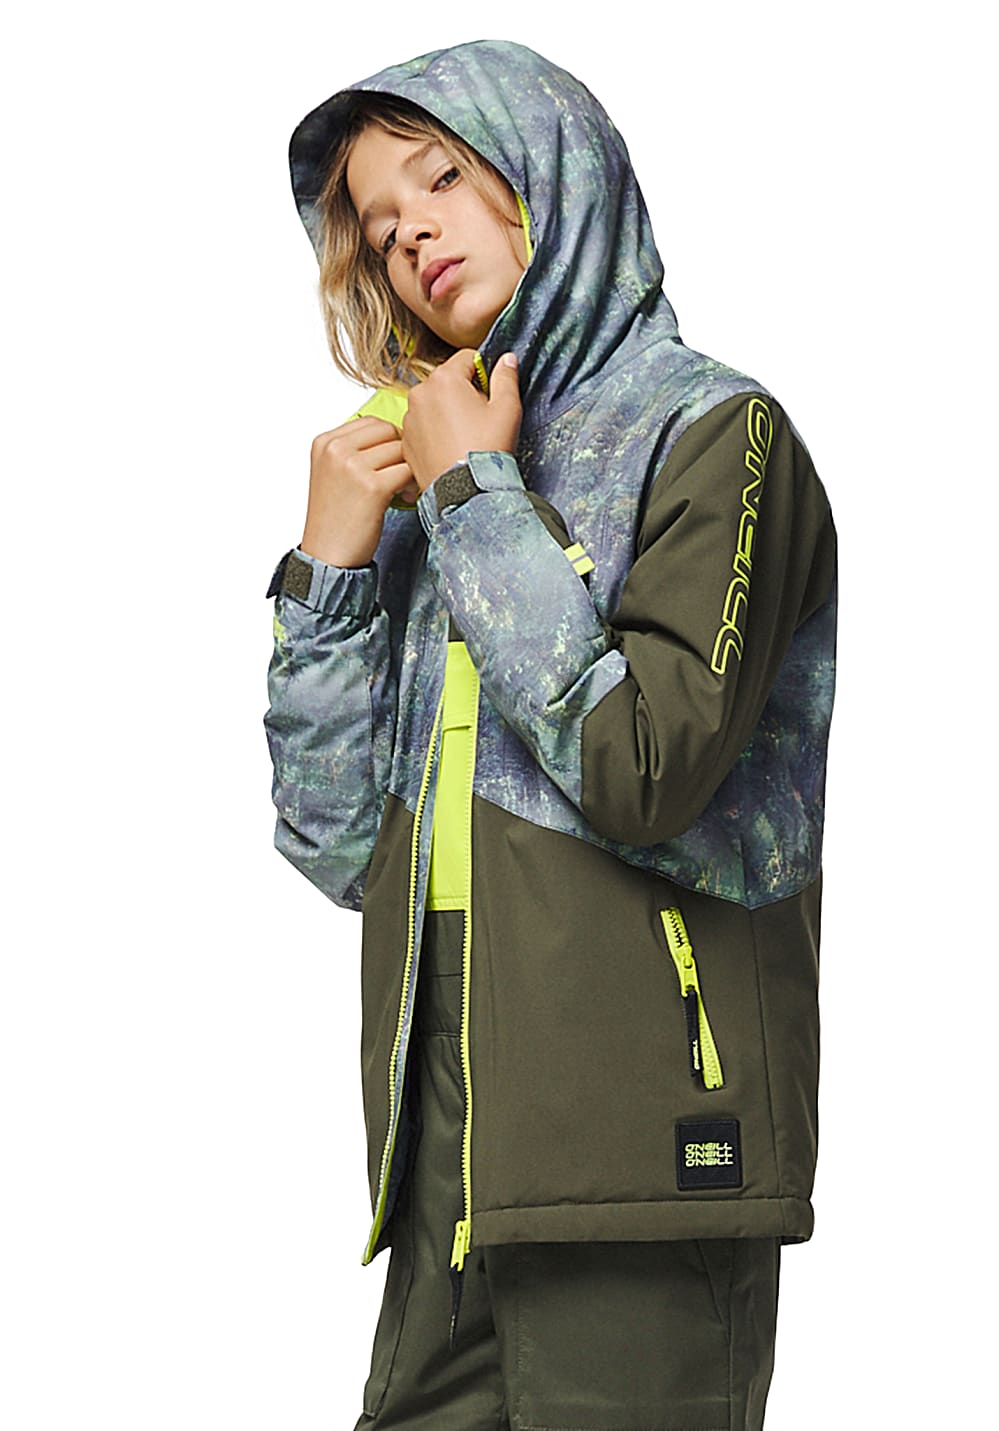 Boysregenwinter - O'Neill Halite Snowboardjacke für Jungs Grün - Onlineshop Planet Sports